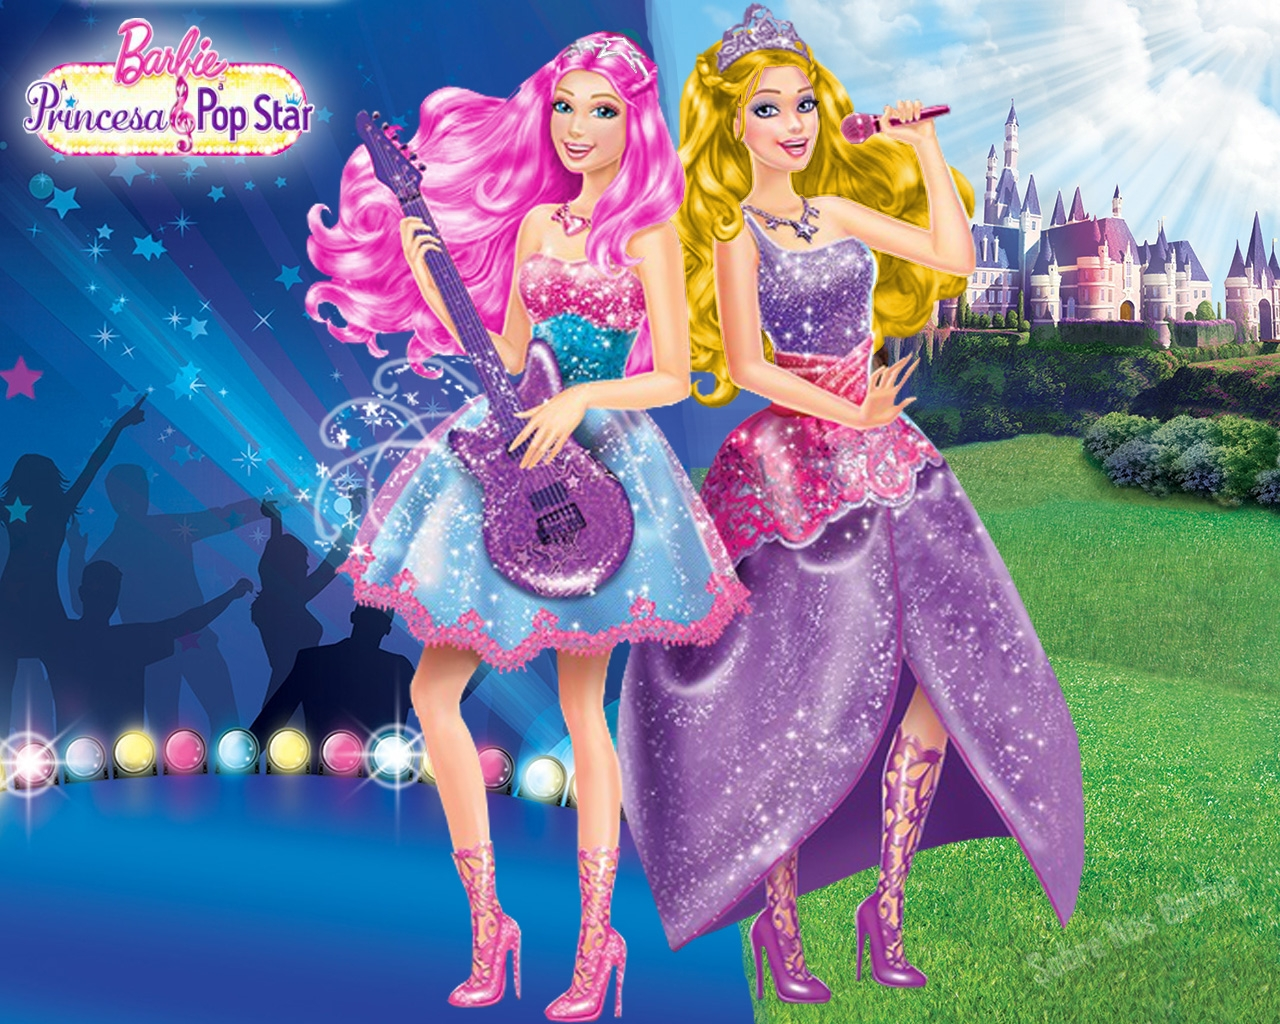 images of barbie princess and the popstar - photo #1